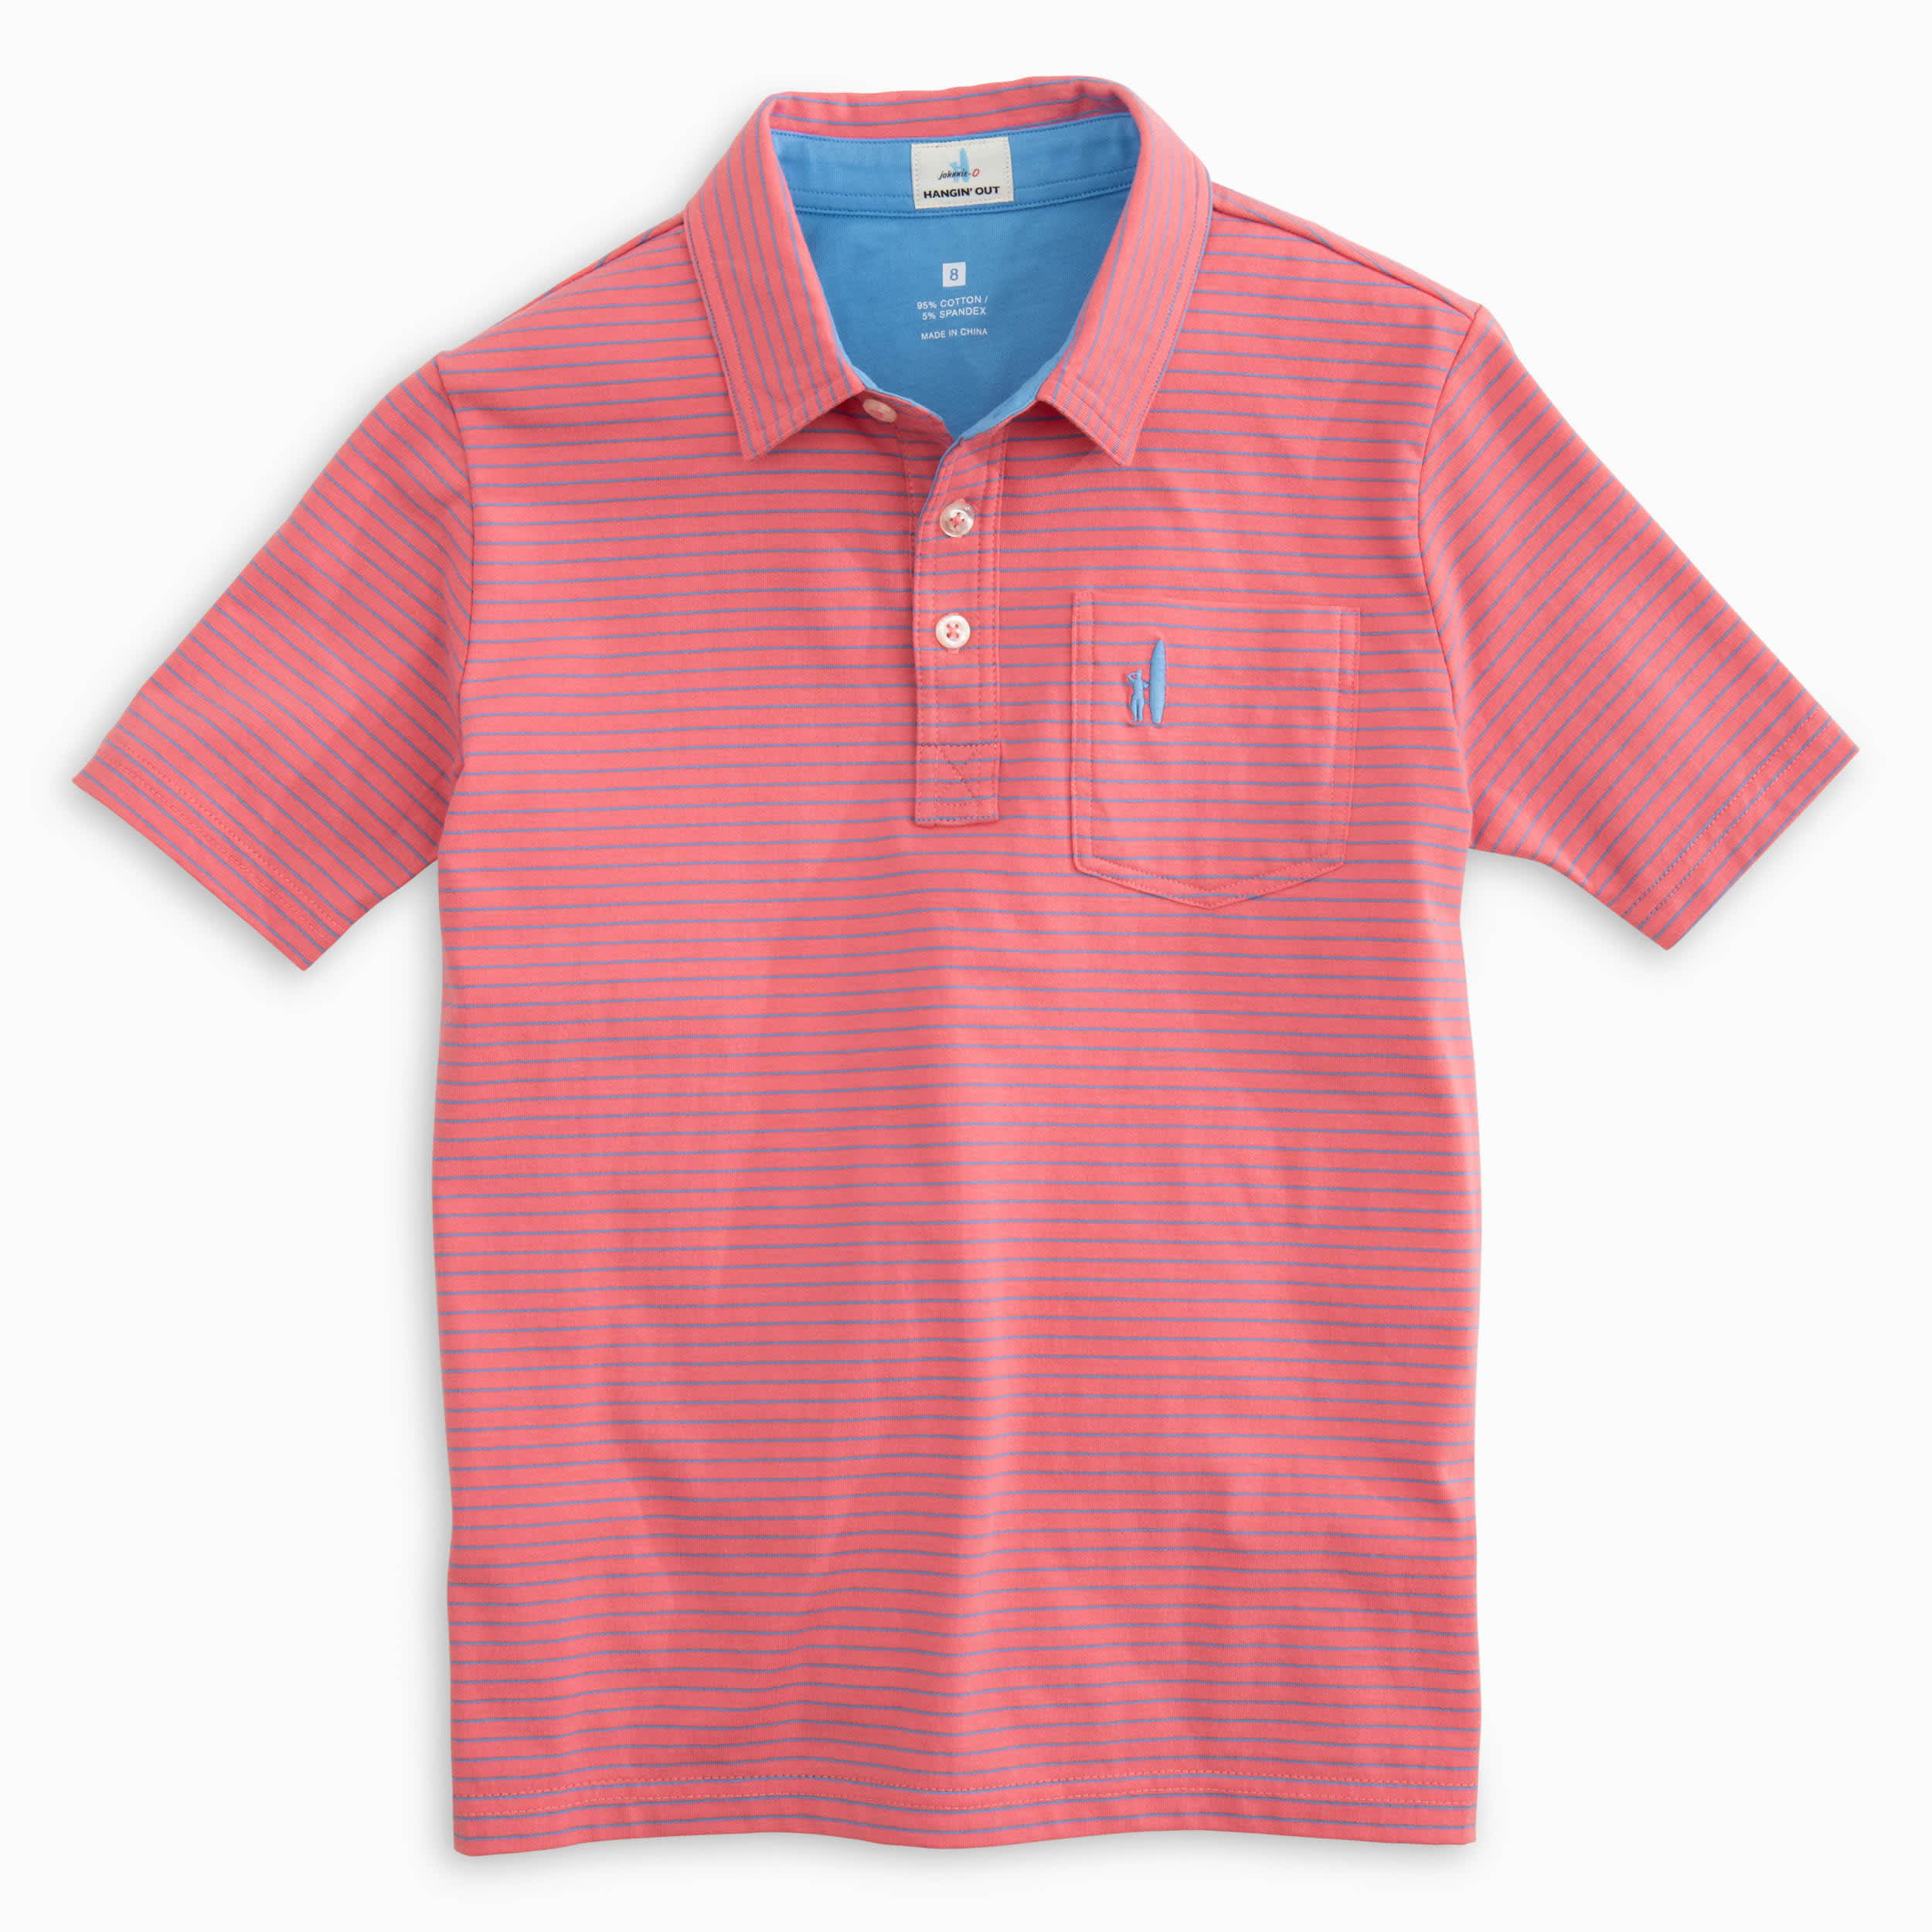 ORIGINAL JR POLO CLIFFS STRIPE